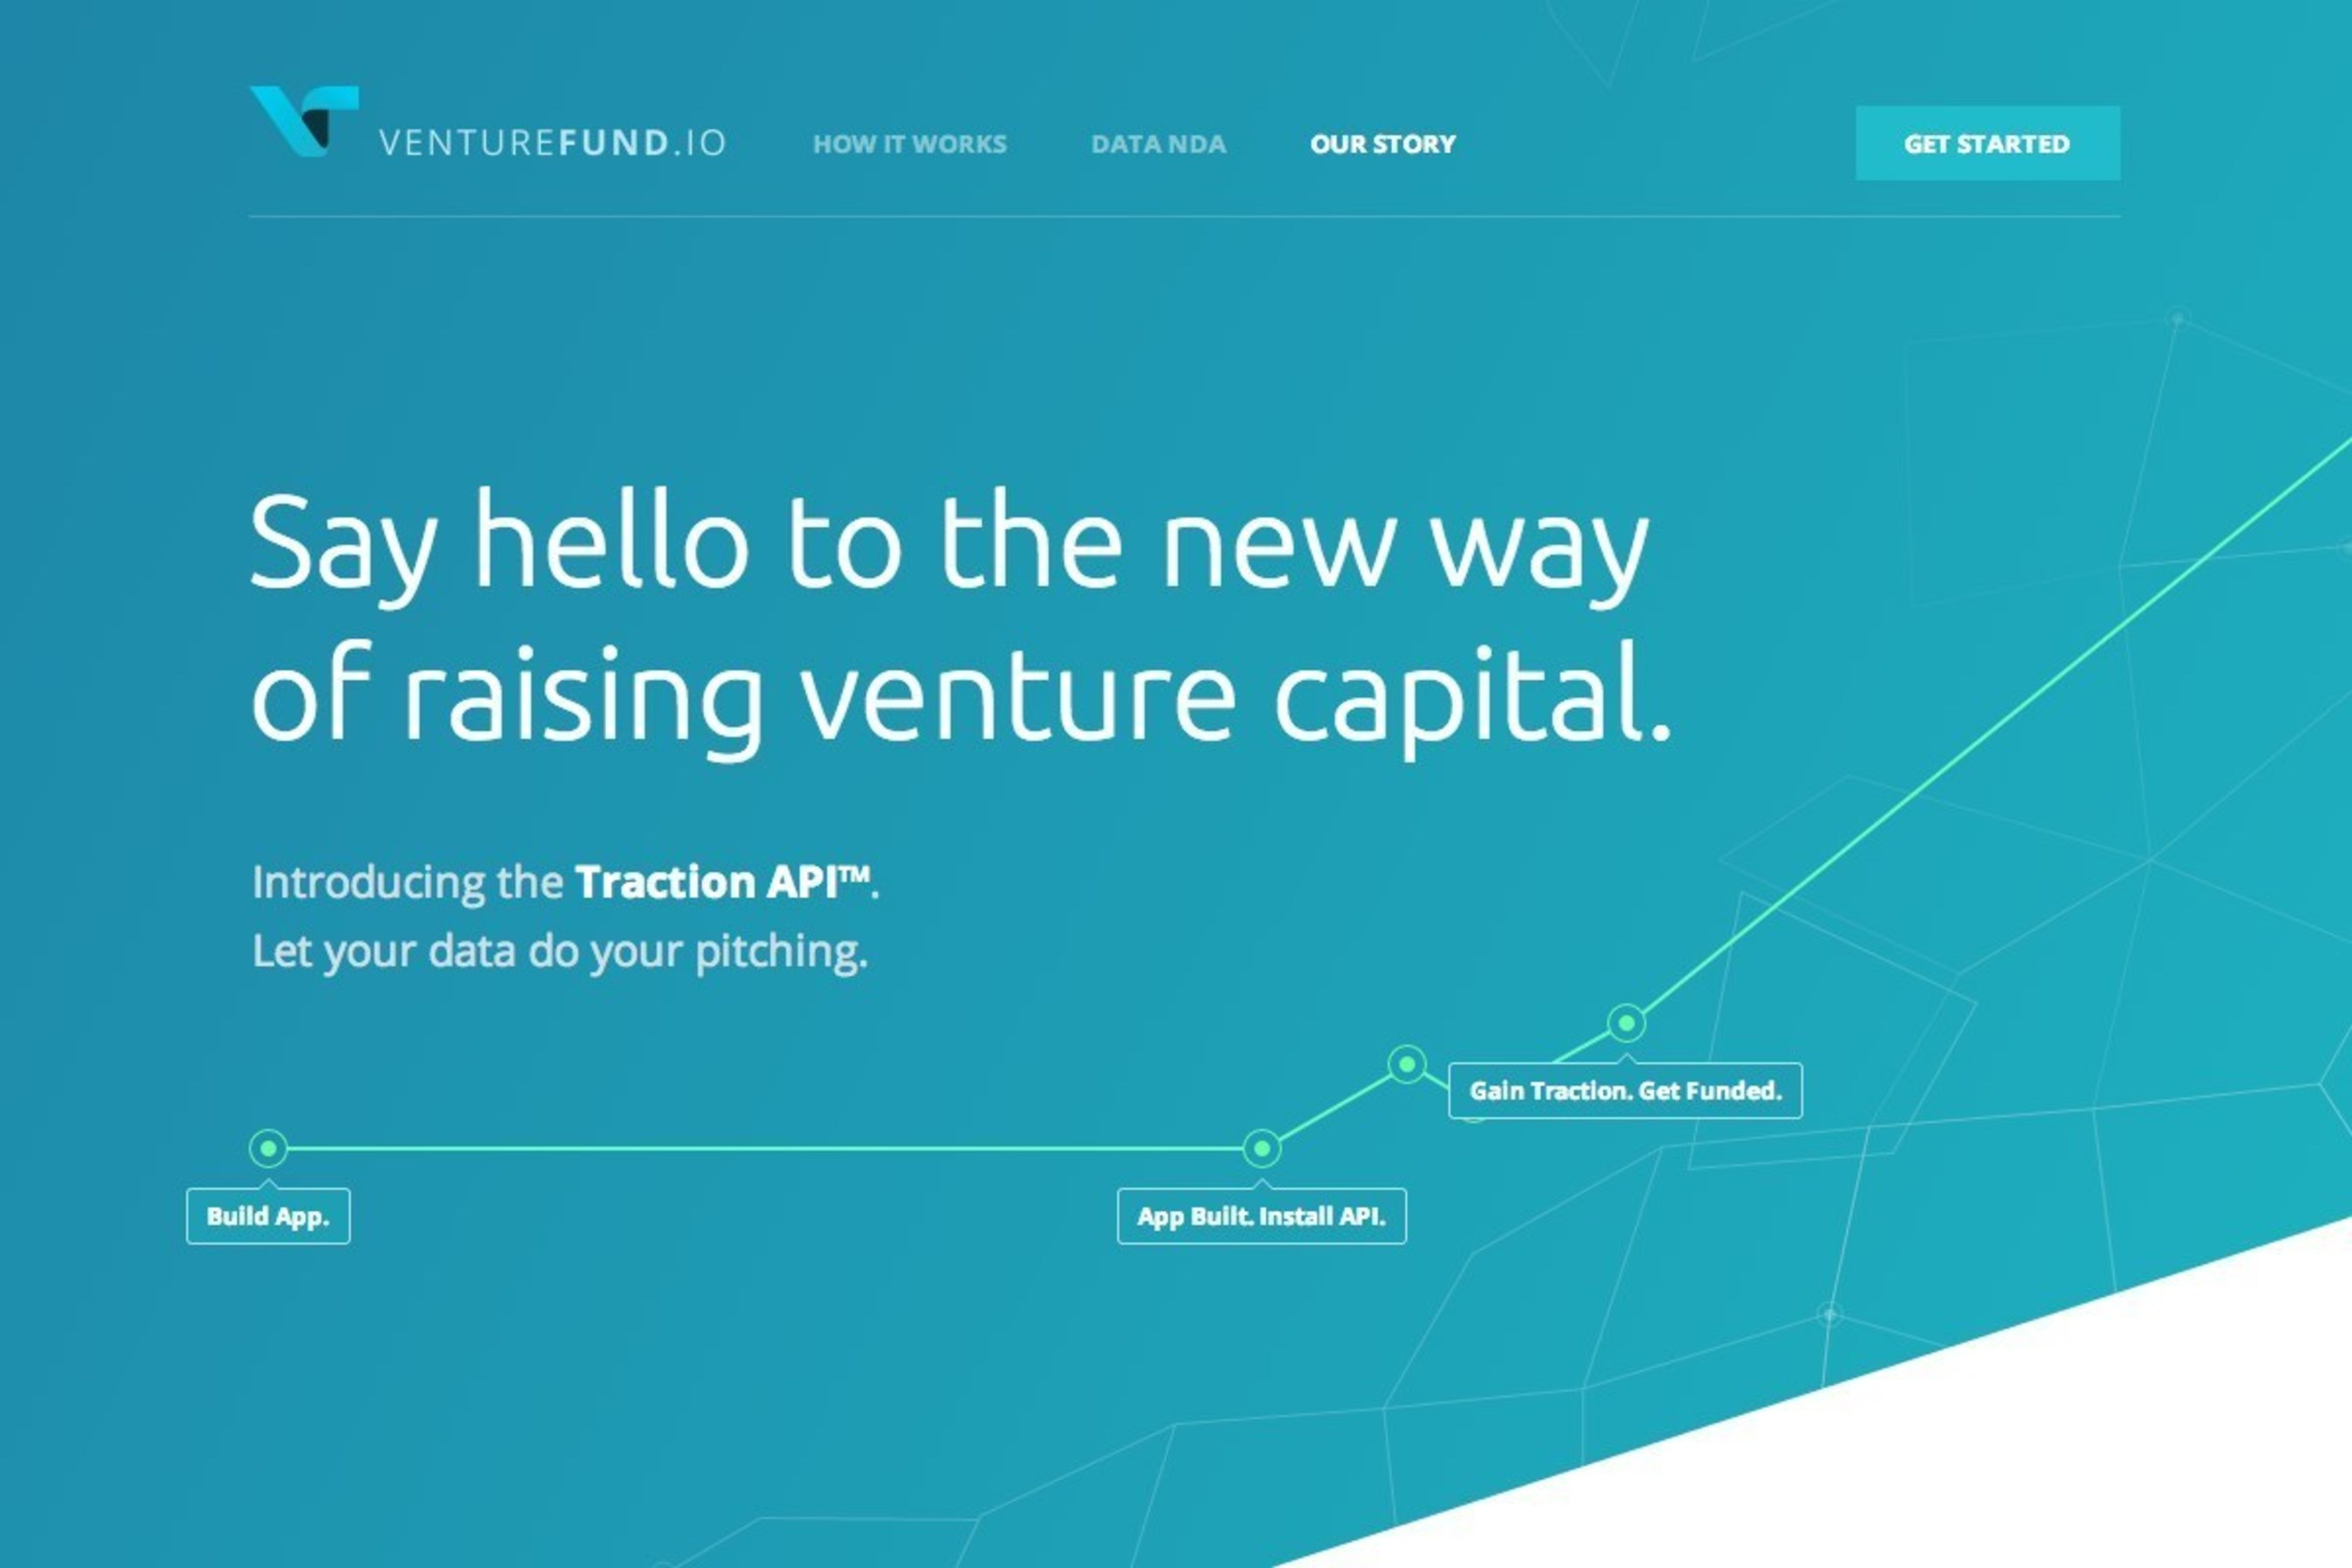 VentureFund.io's Traction API(TM) and accompanying platform provides early stage startup founders with free insights, guidance, and tools to better understand and drive the traction that's needed to attract investment. VentureFund.io is a traction-focused software platform and early stage venture capital fund lead by a diverse group of serial entrepreneurs and investors who love building startups.